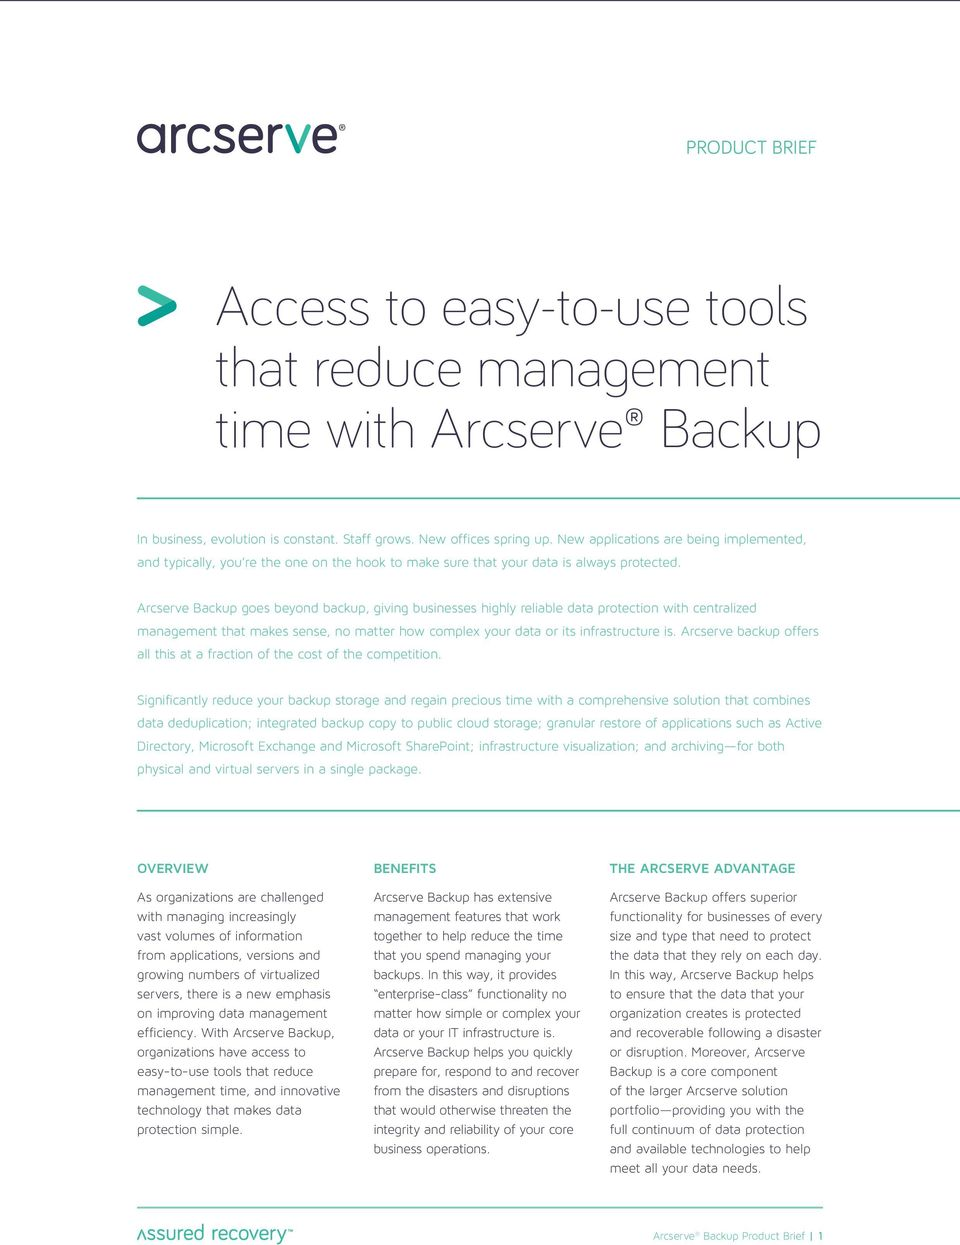 Arcserve Backup goes beyond backup, giving businesses highly reliable data protection with centralized management that makes sense, no matter how complex your data or its infrastructure is.